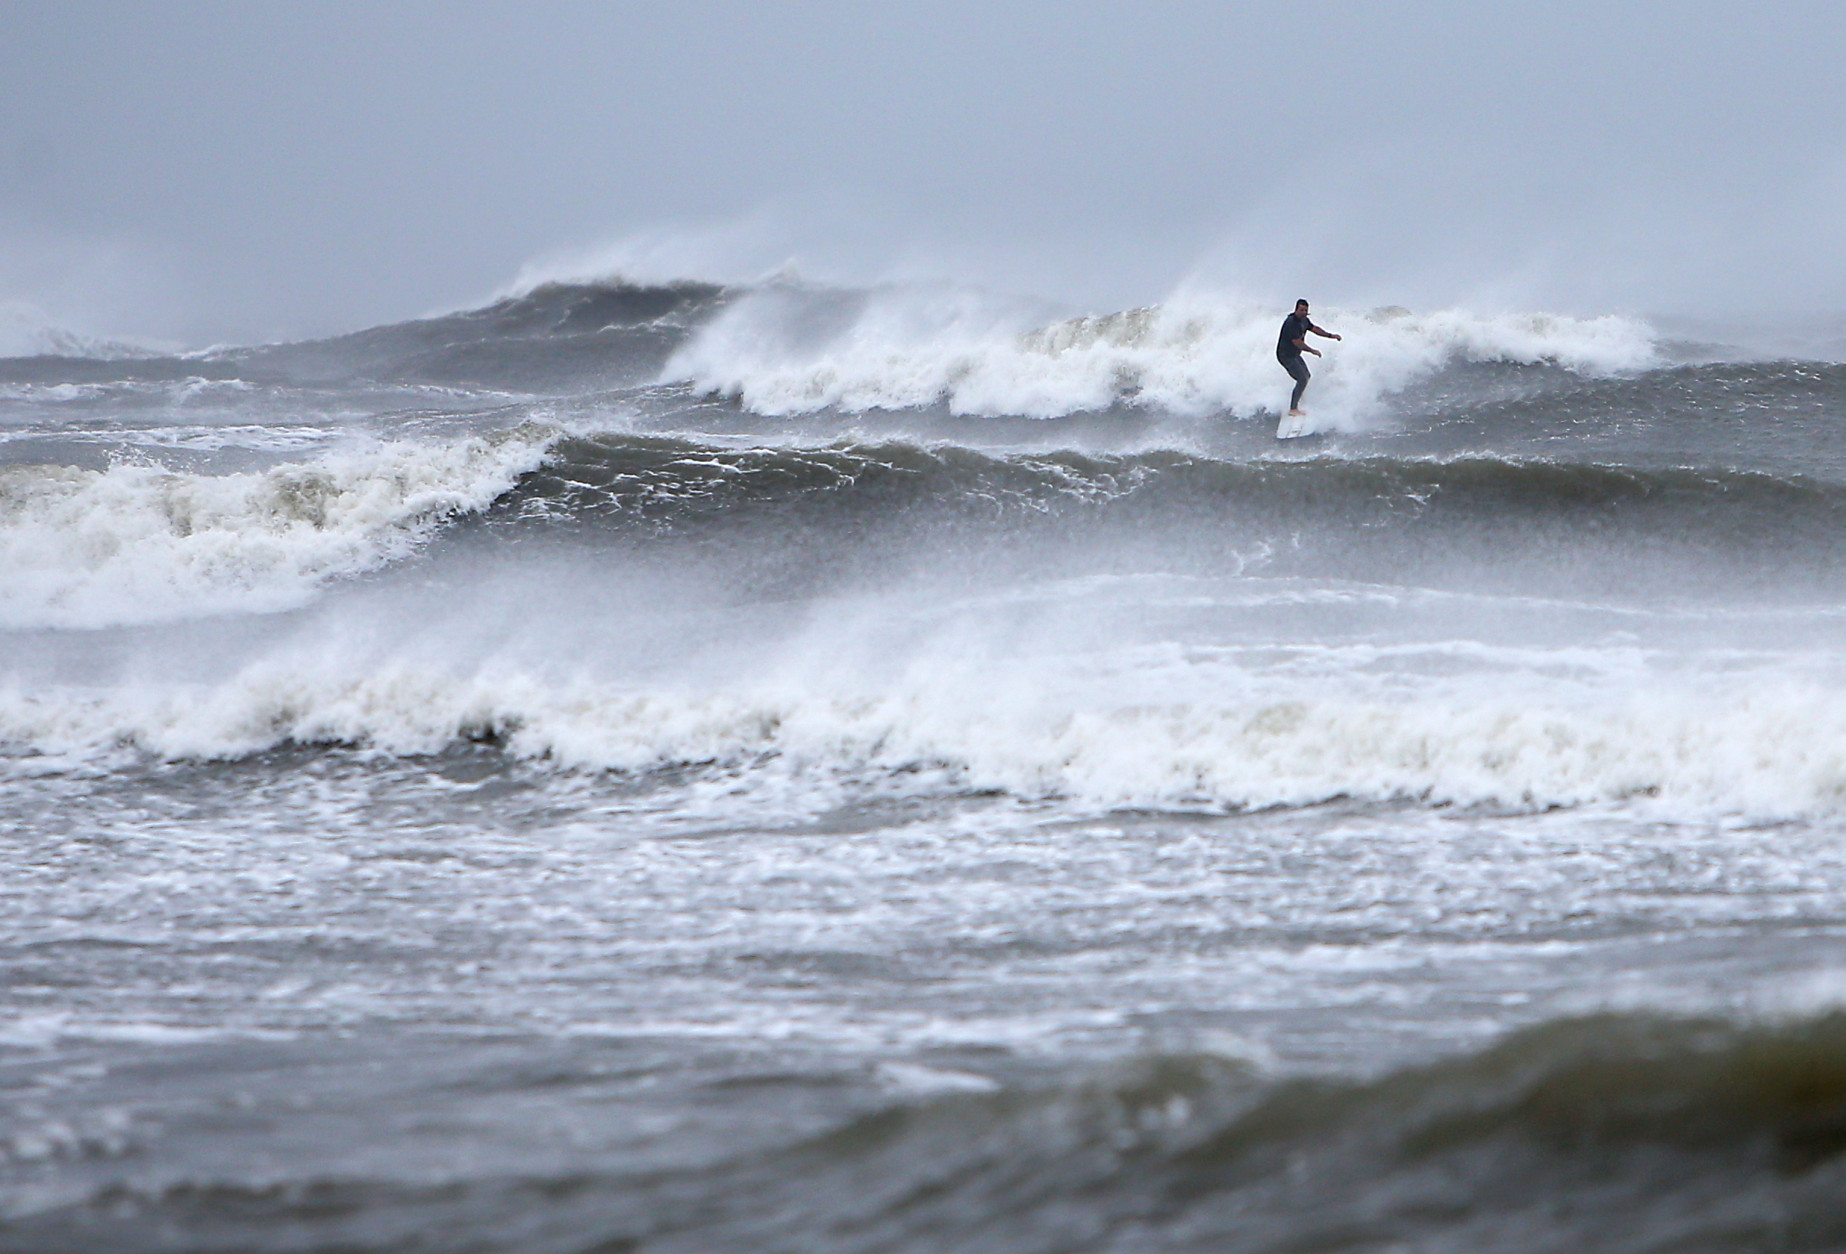 A surfer catches a wave in the Absecon Inlet off the shore of Brigantine, N.J., Saturday, Oct. 3, 2015, as a strom brought heavy winds and rain to the Jersey shore communities. (Lori M. Nichols/NJ.com via AP)